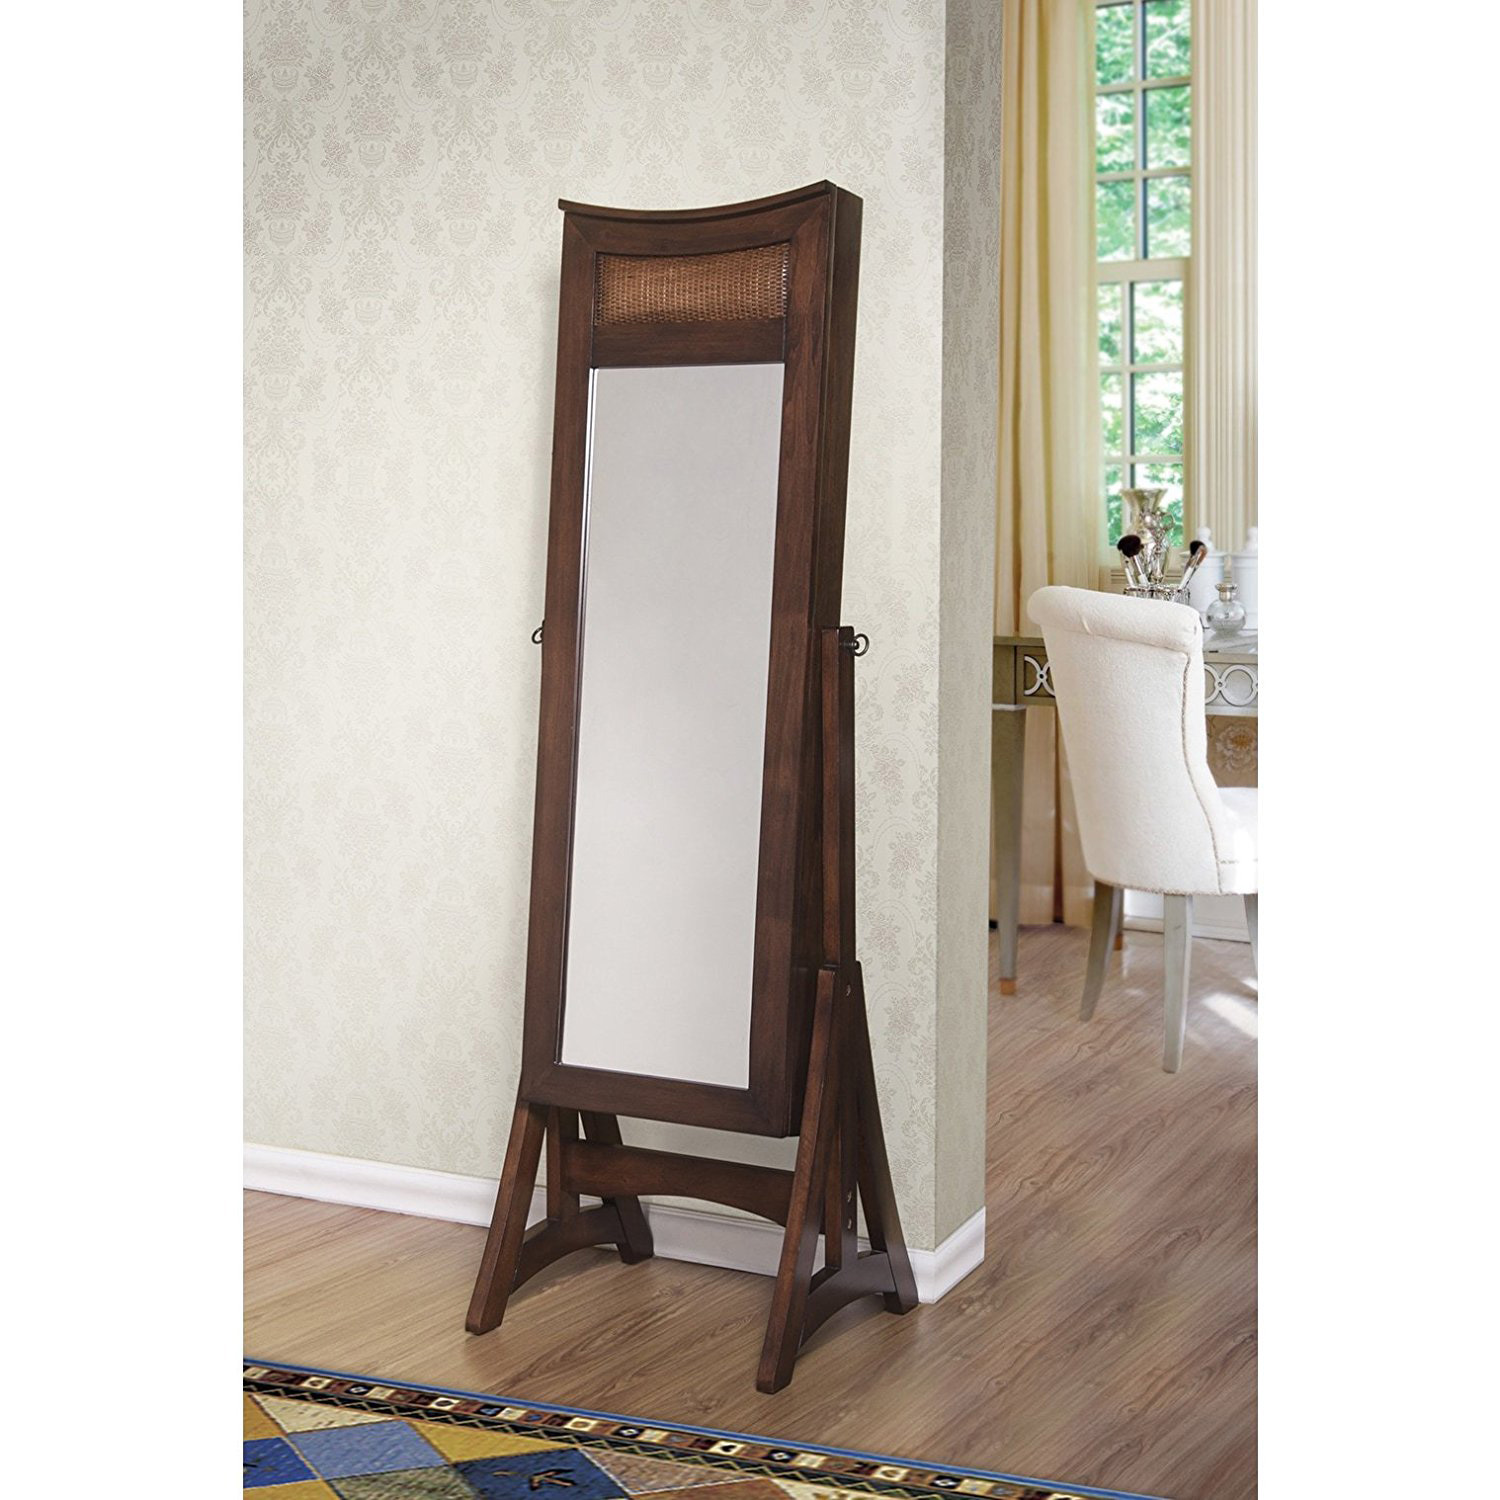 Creative Rustic Mirrored Floor Standing Tall Jewelry Armoire